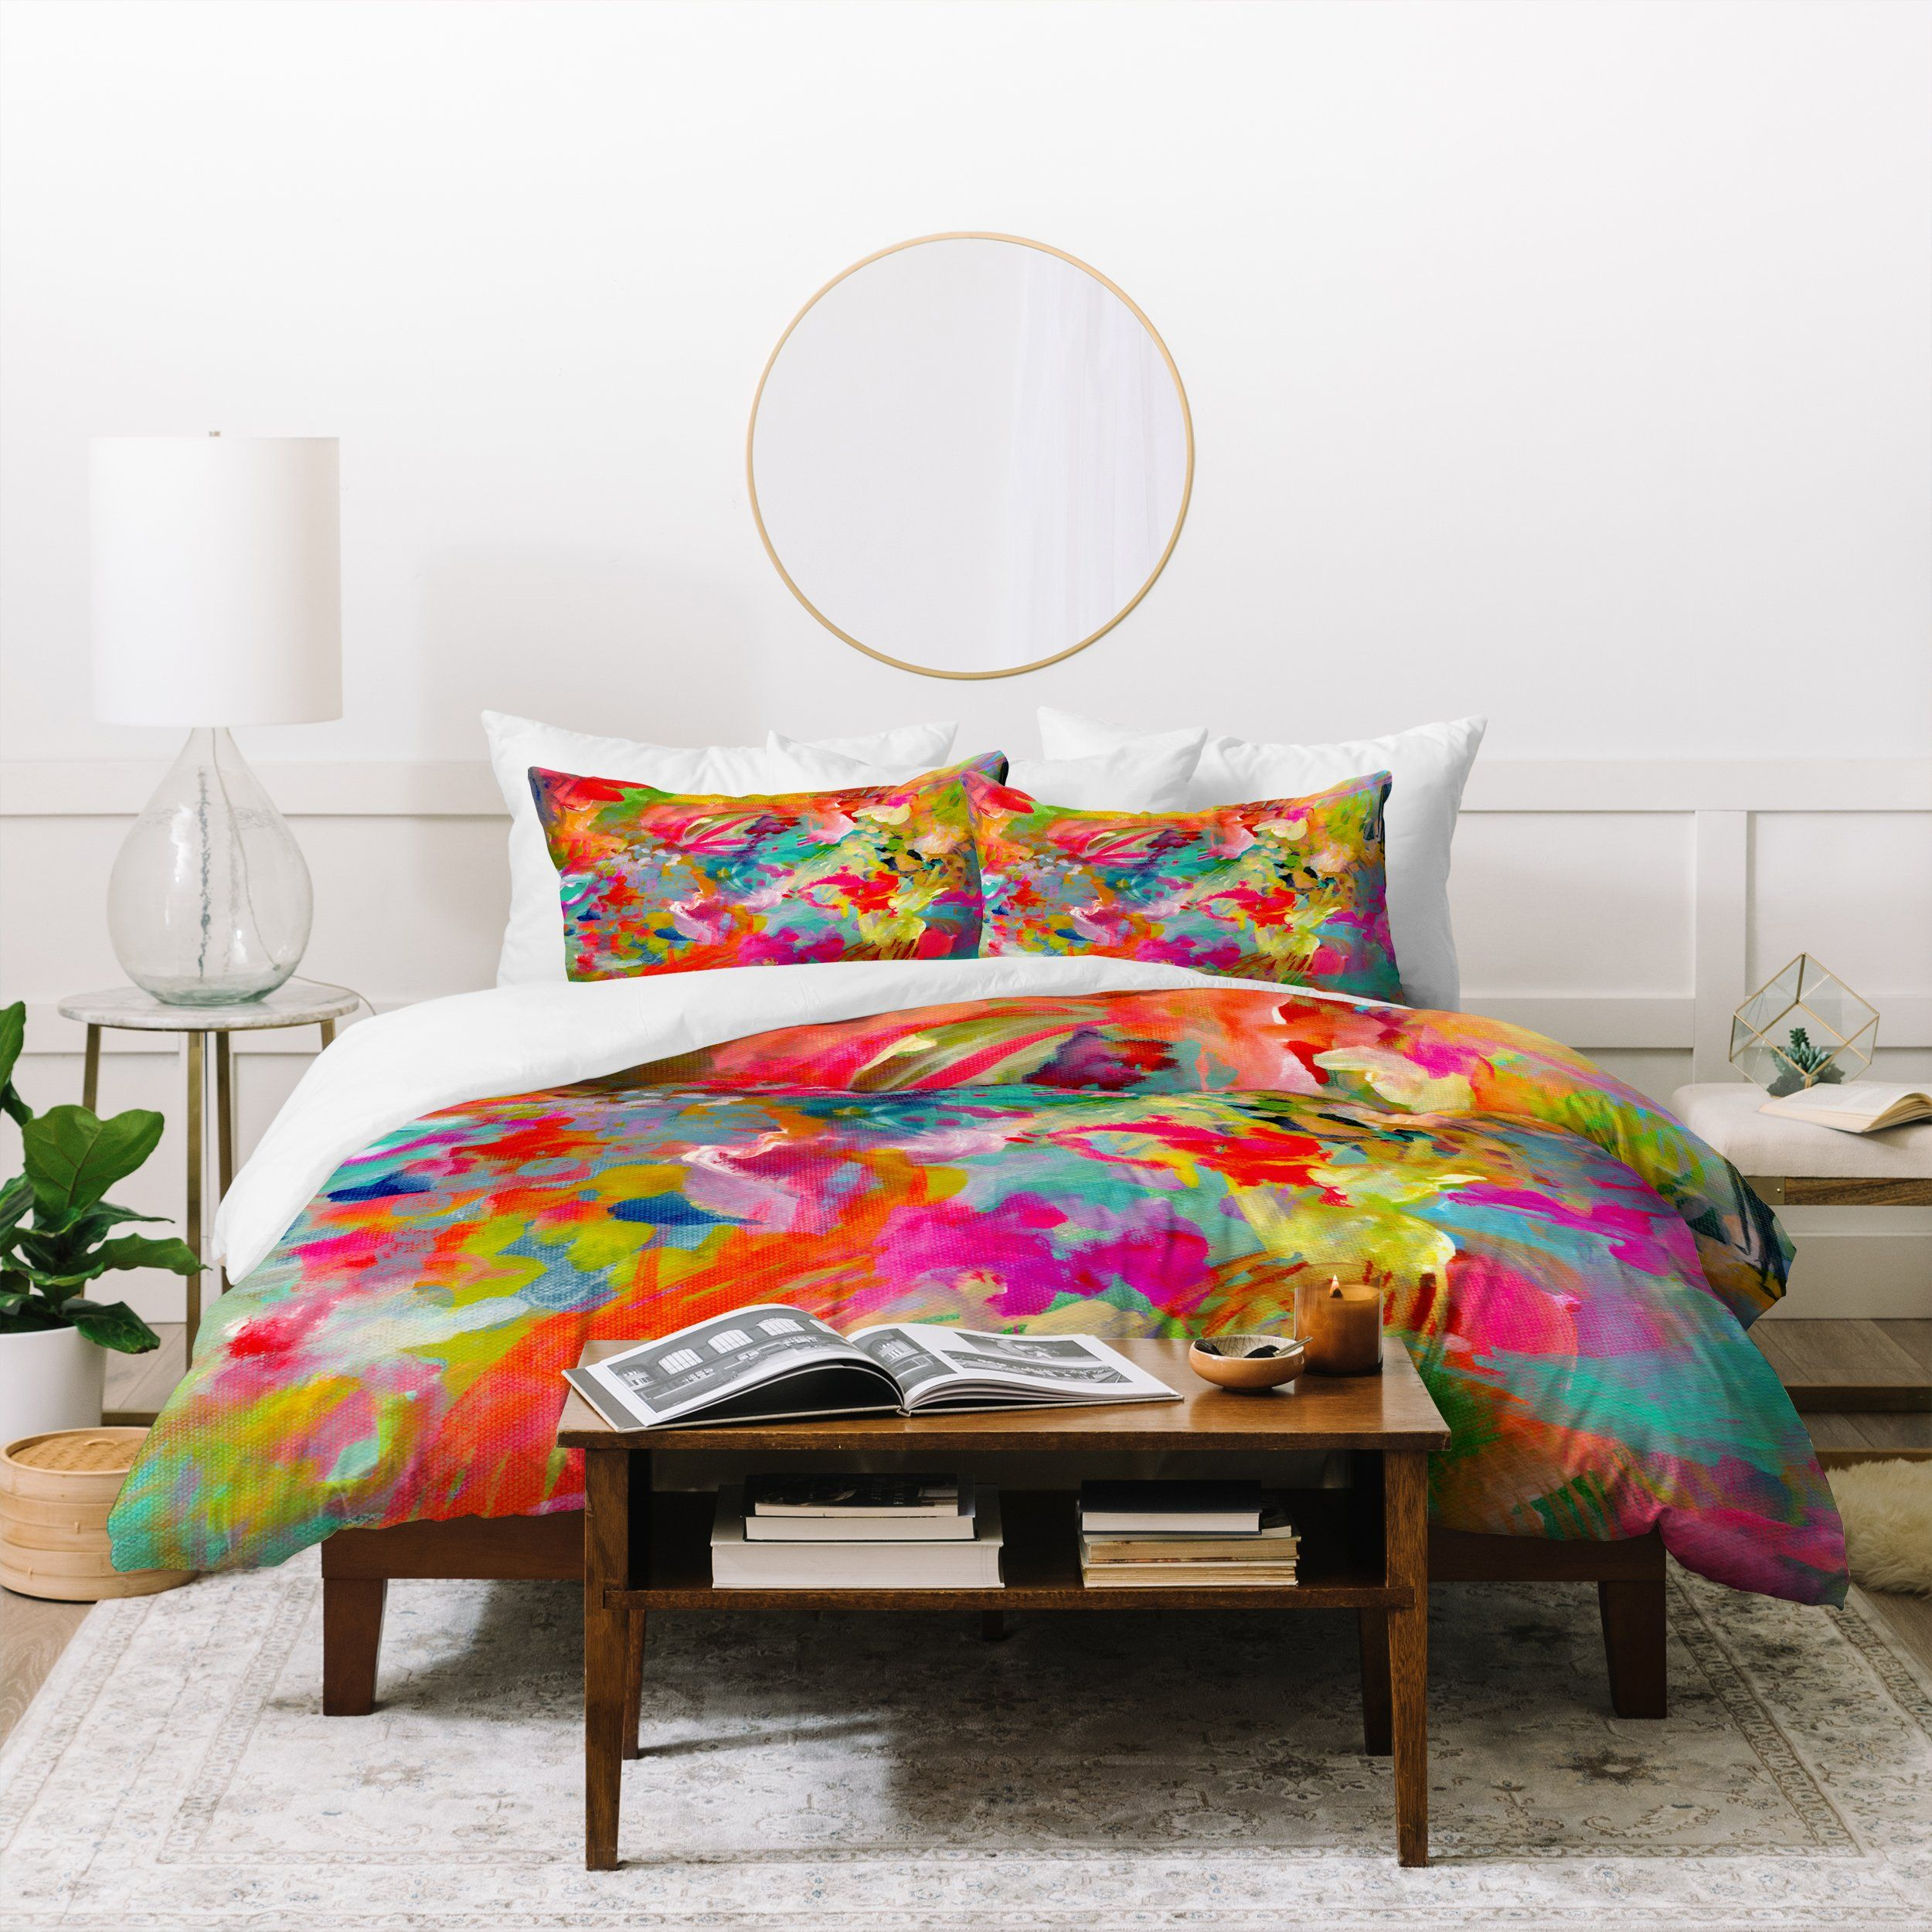 Thats Hot Duvet Cover Stephanie Corfee